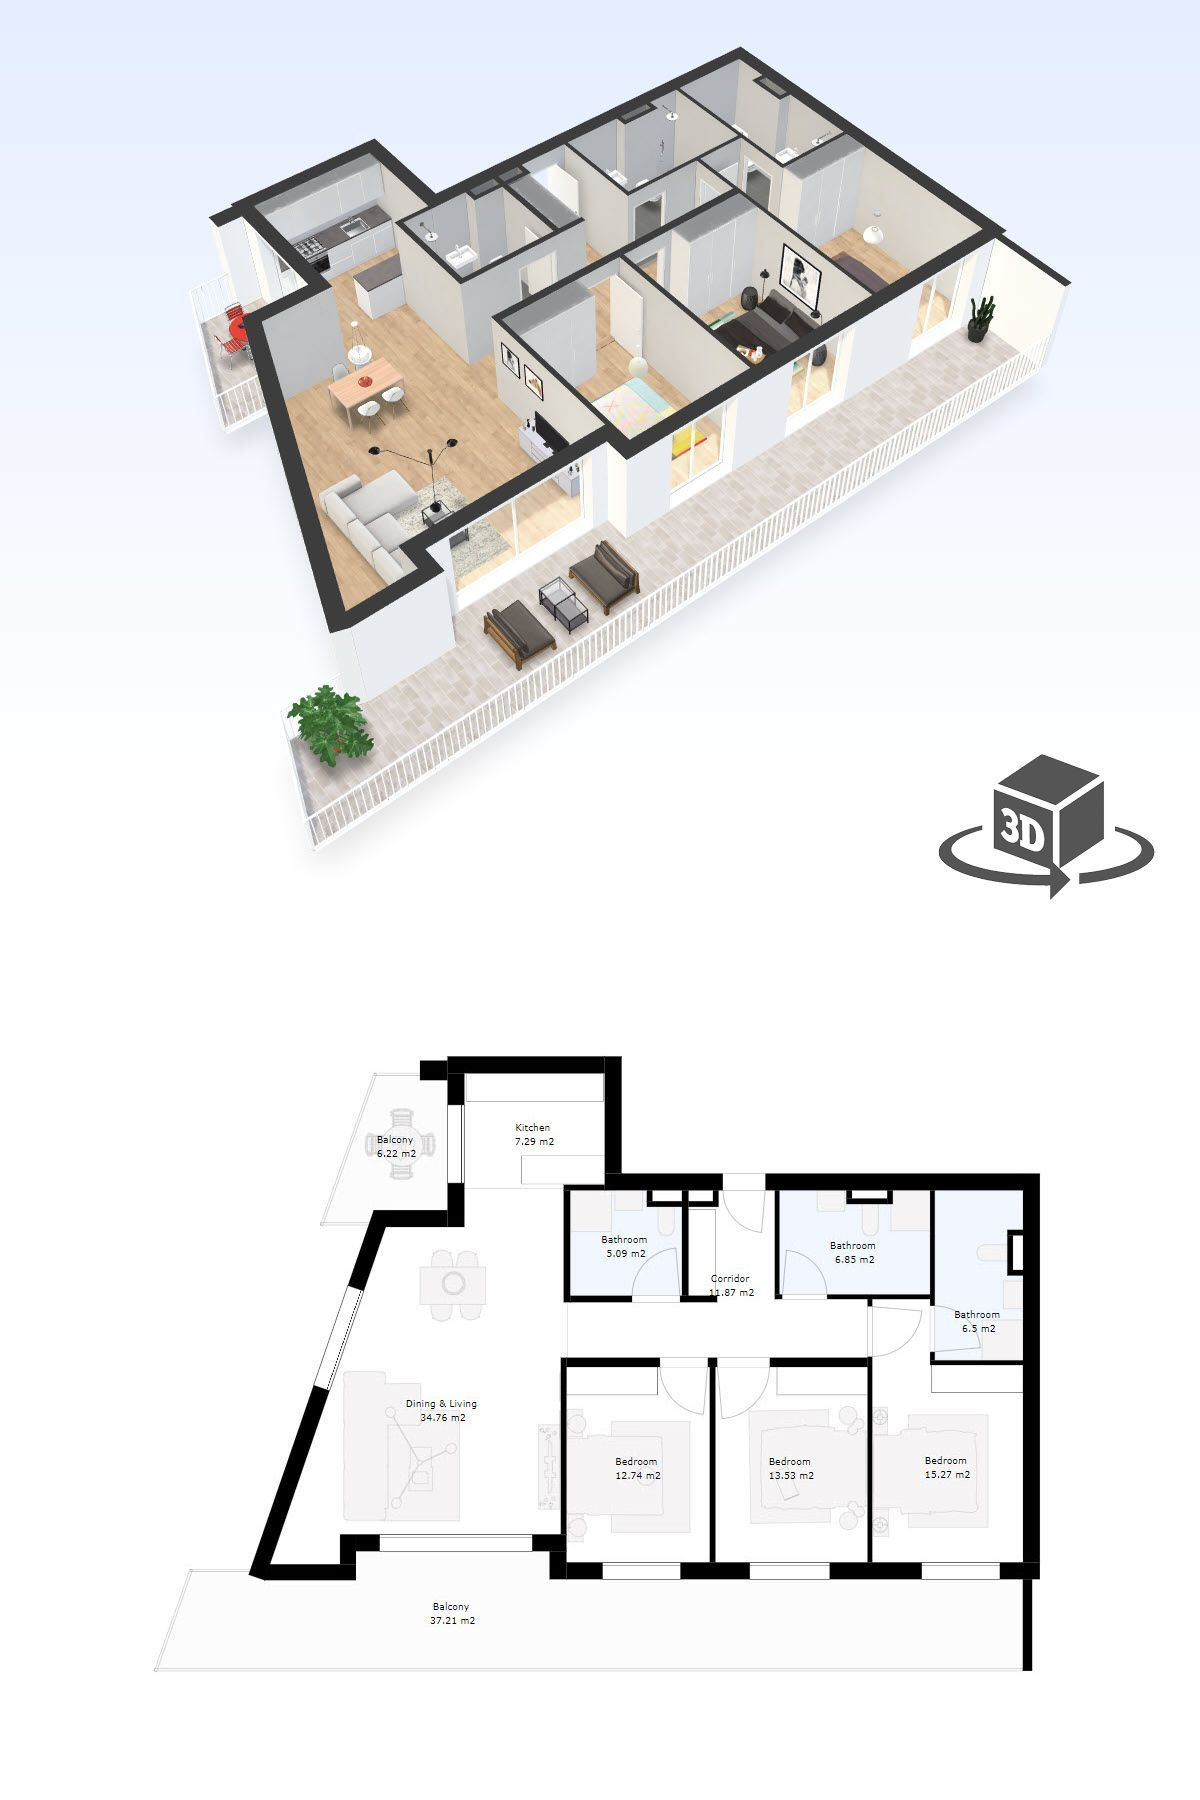 House Models and Plans New 3 Bedroom Apartment Interactive 3d Floor Plan Model